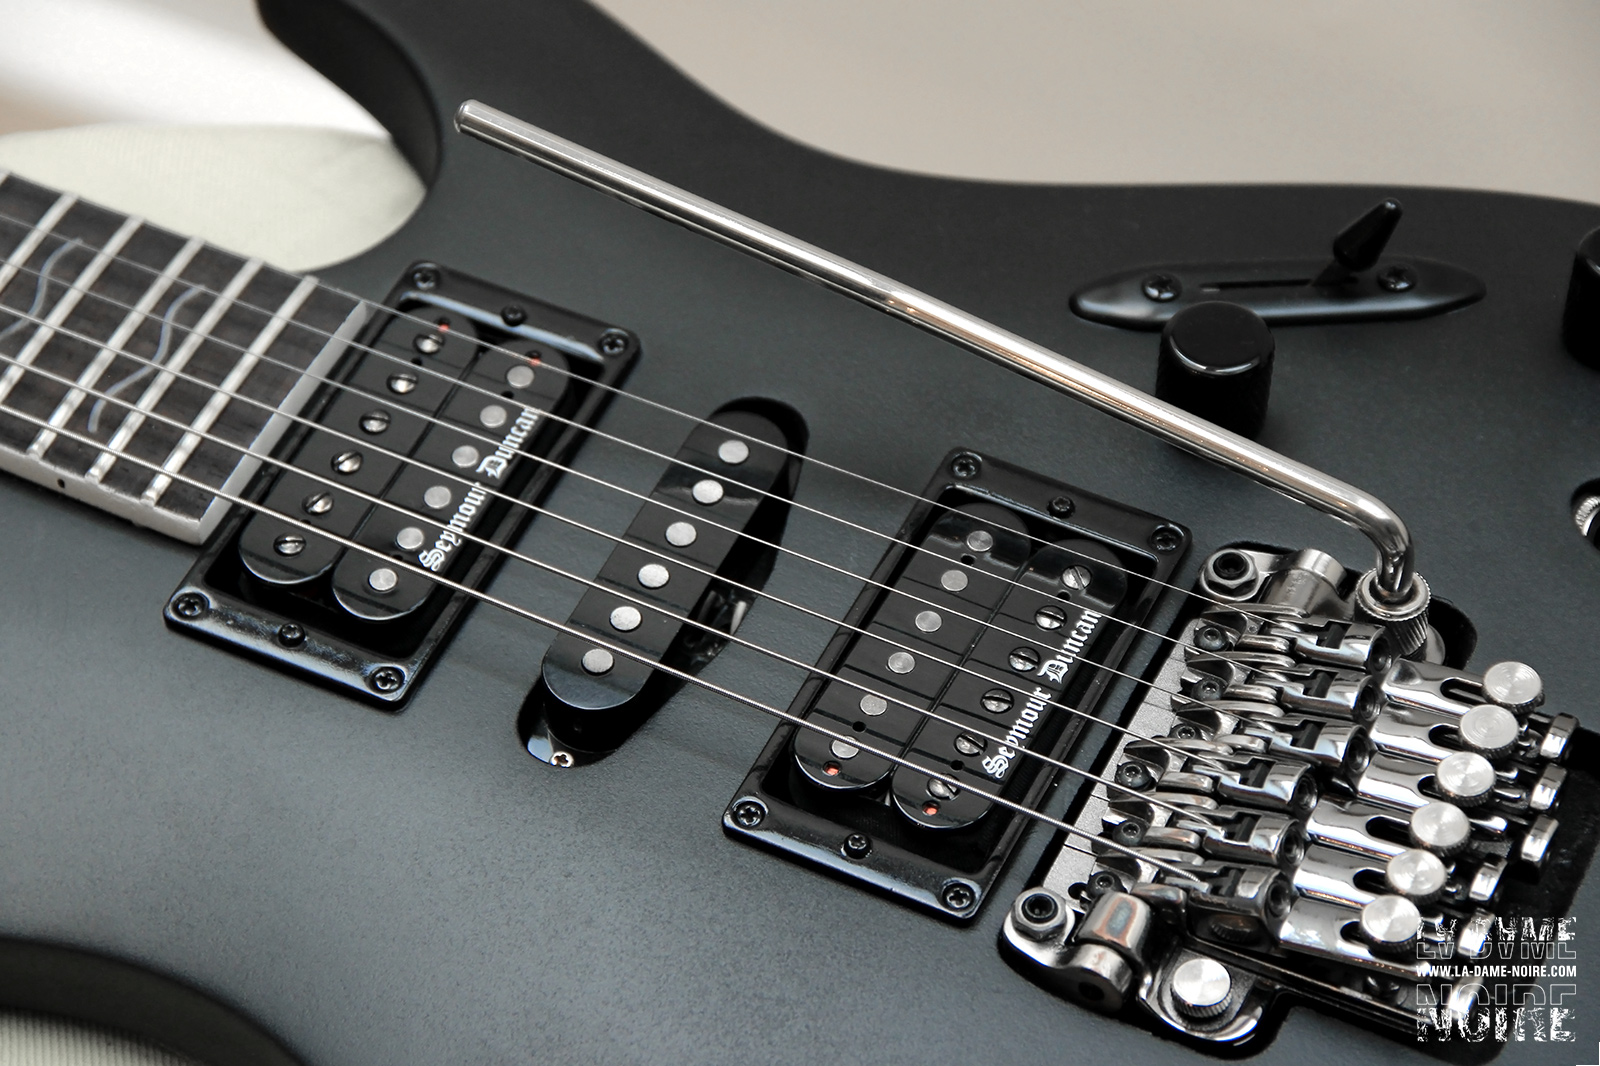 Picture of the guitar body painted in black with new humbuckers Black Winter